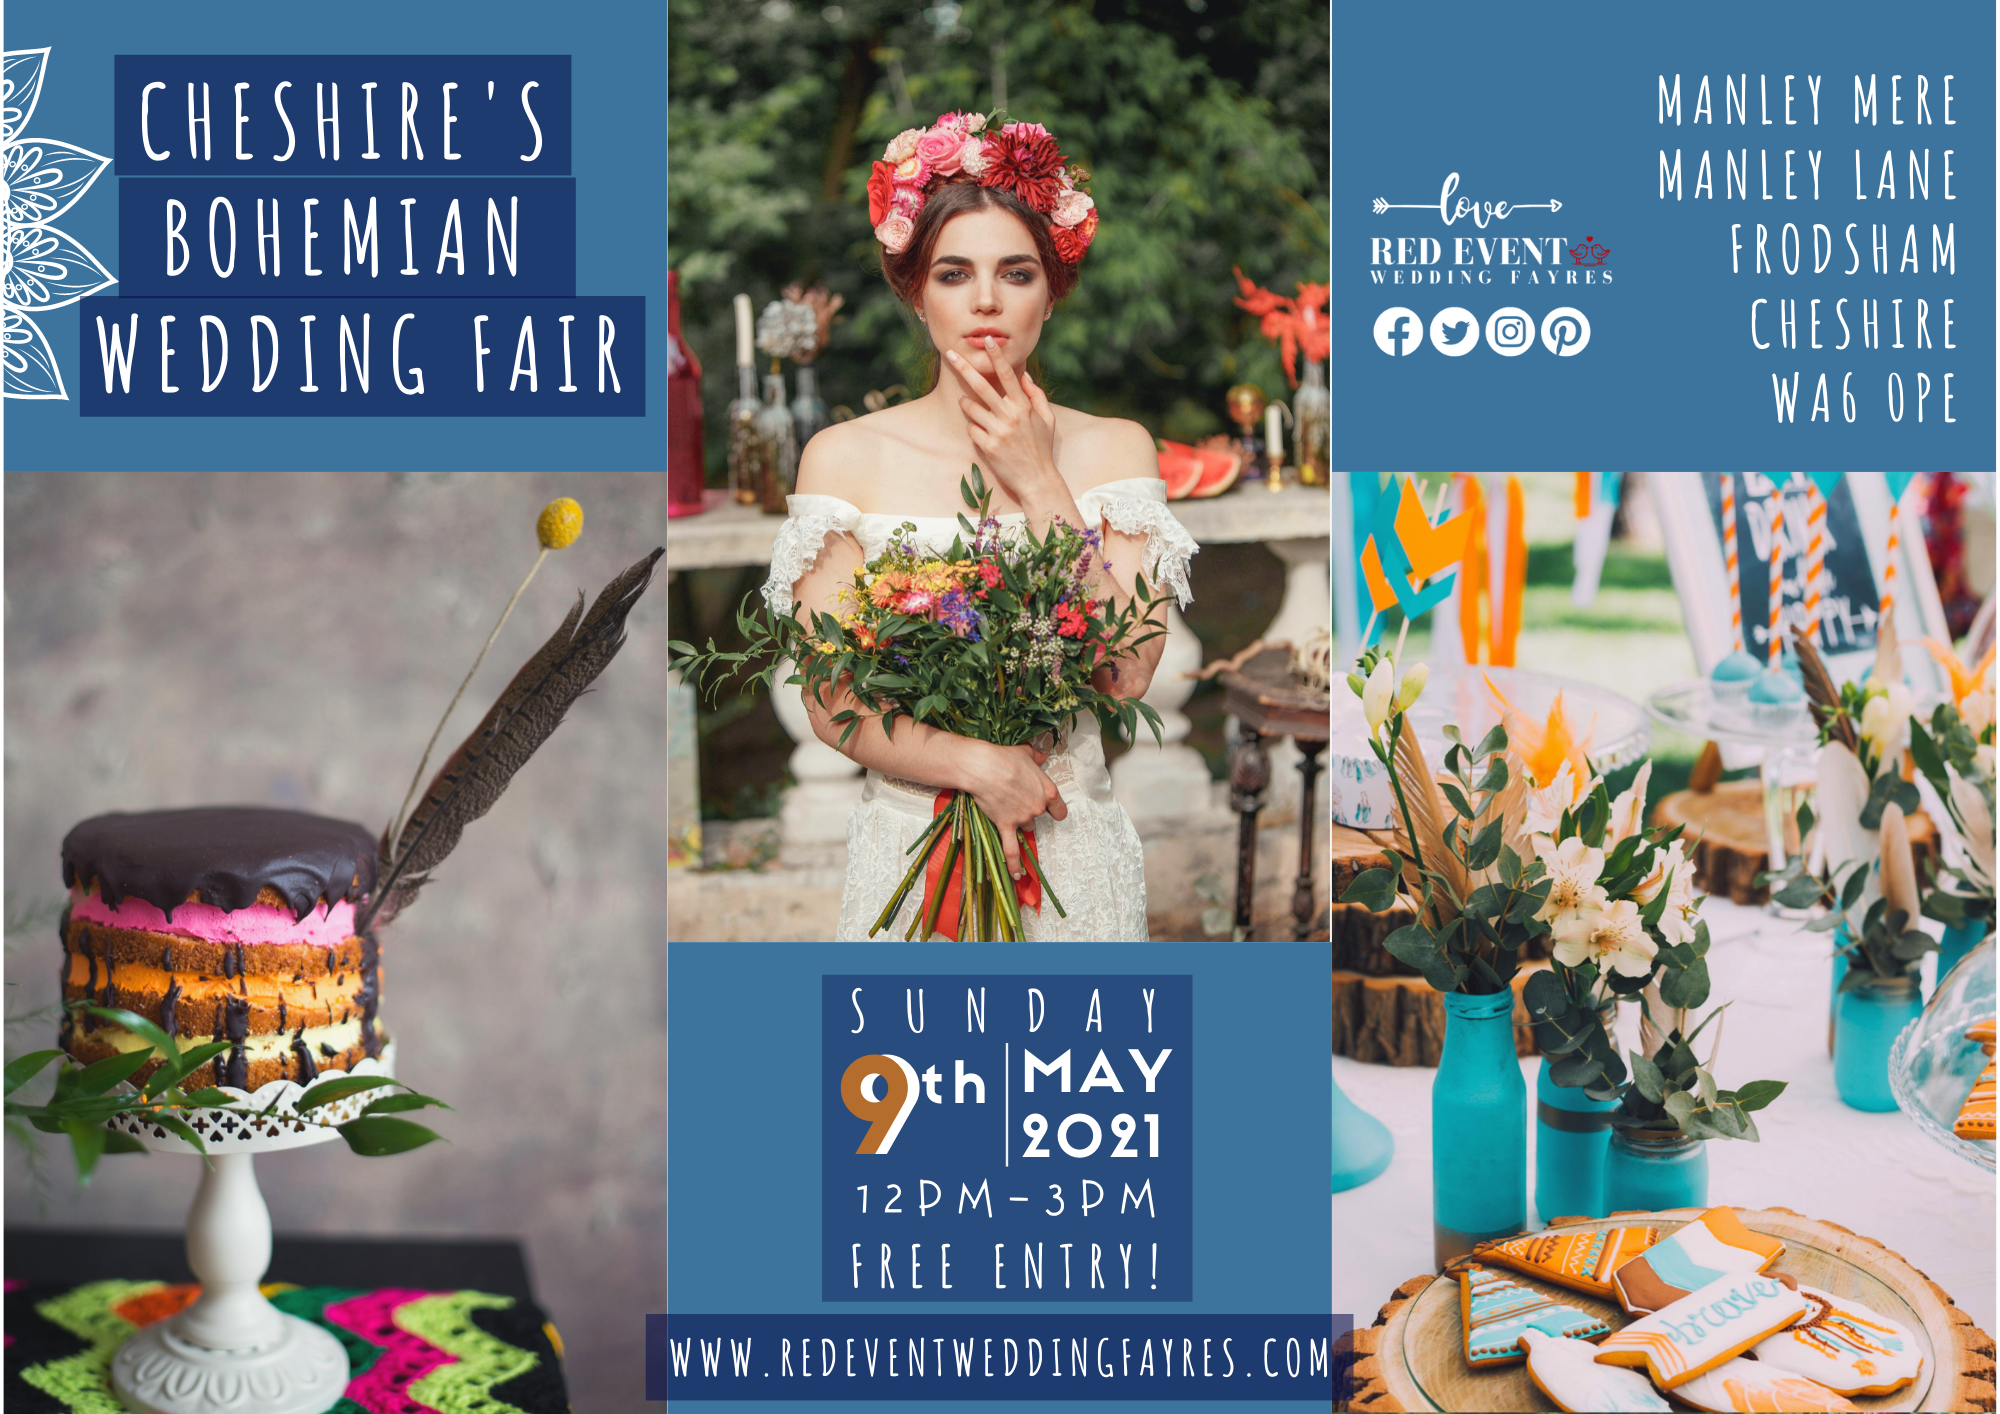 Cheshire's Bohemian Wedding Fayre at Manley Mere